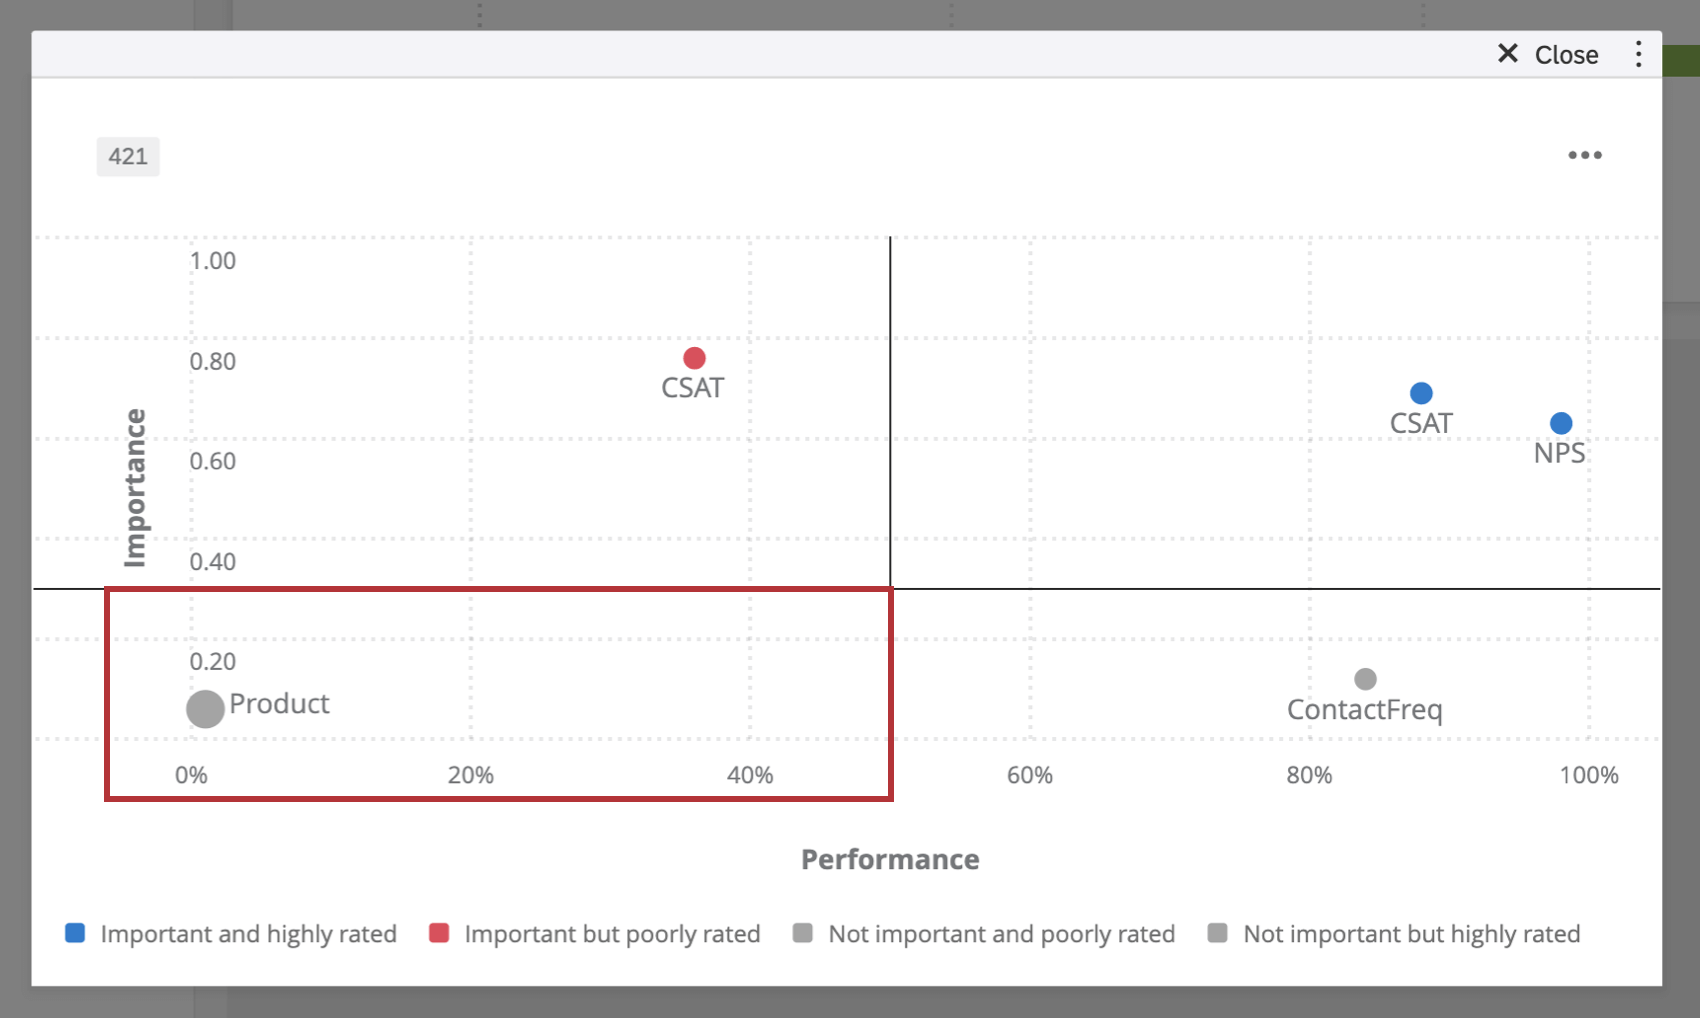 Not Important and Poorly Rated in bottom-left quadrant of graph